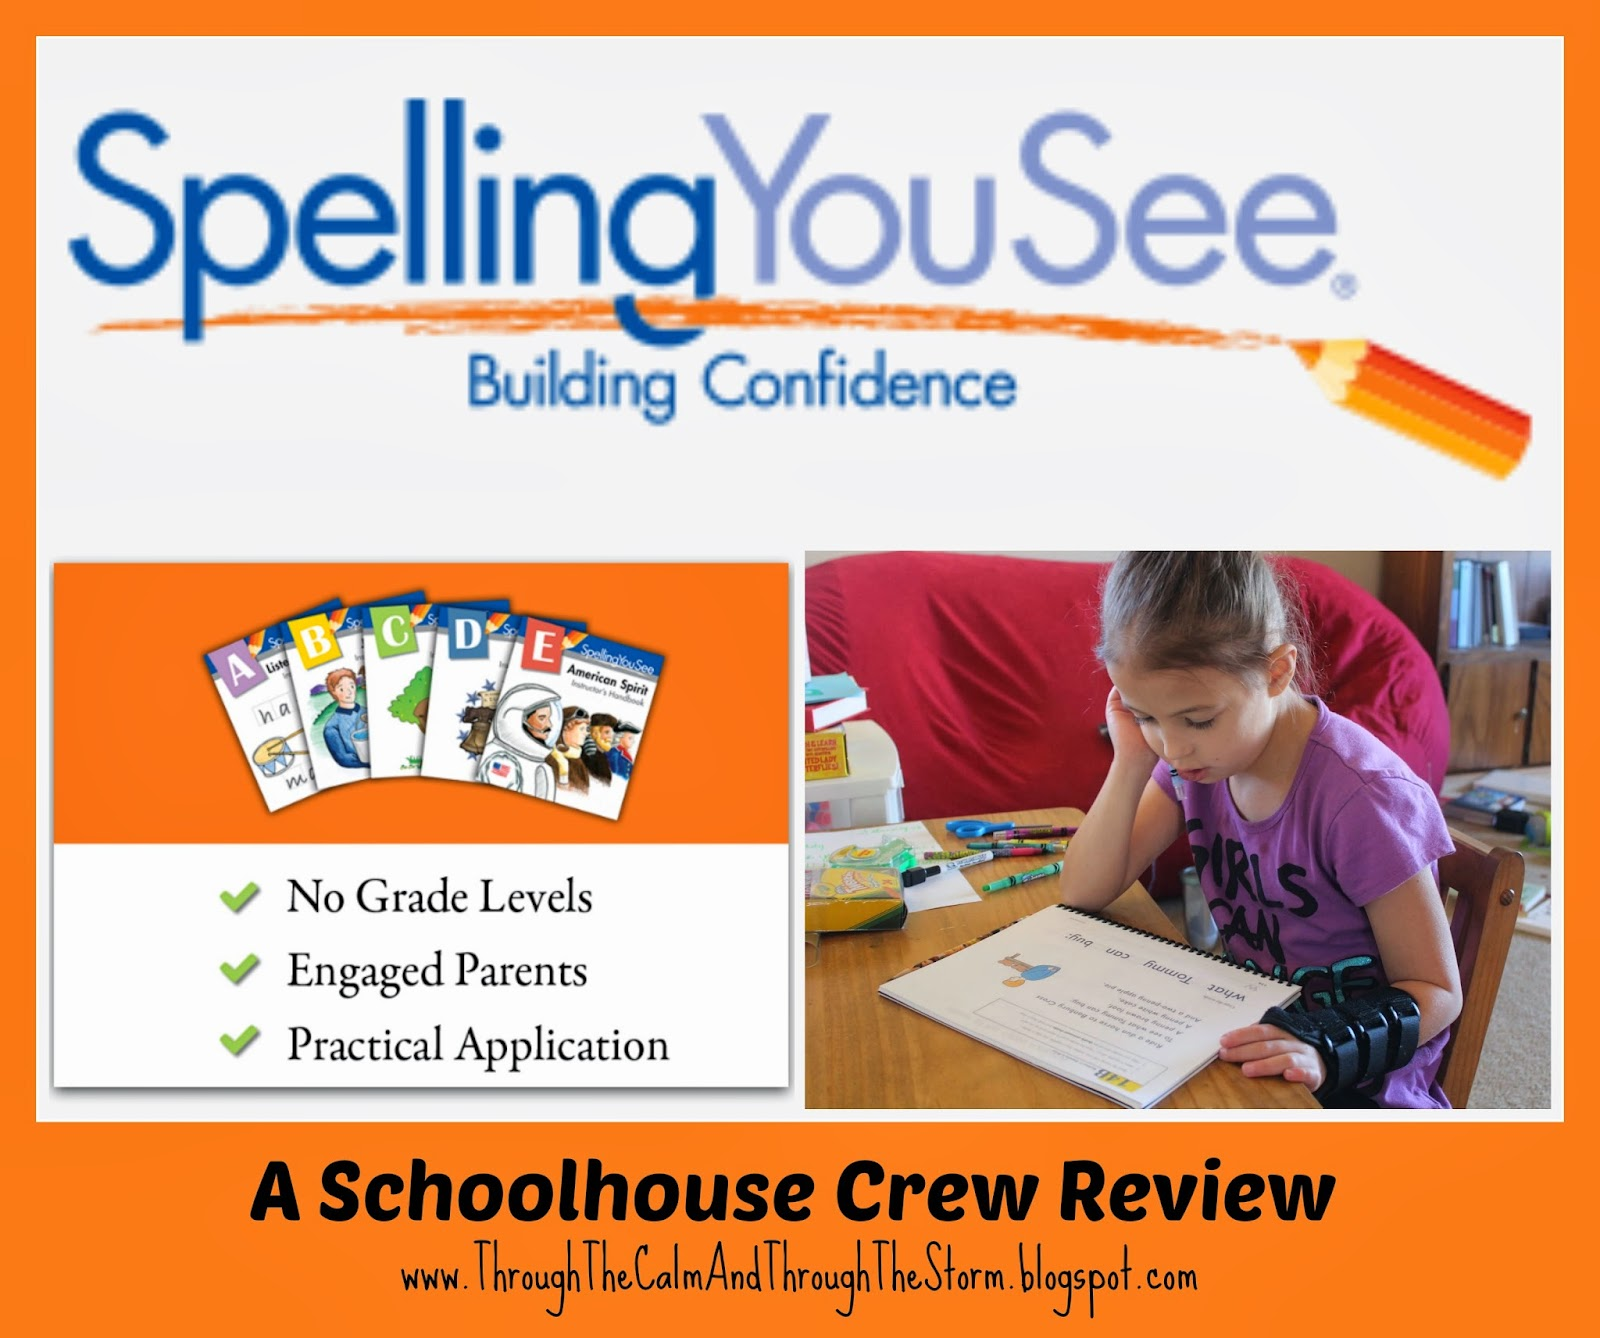 Worksheet Spelling Programs through the calm and storm spelling you see five levels of programs are based on research into developmental stages there no grade in